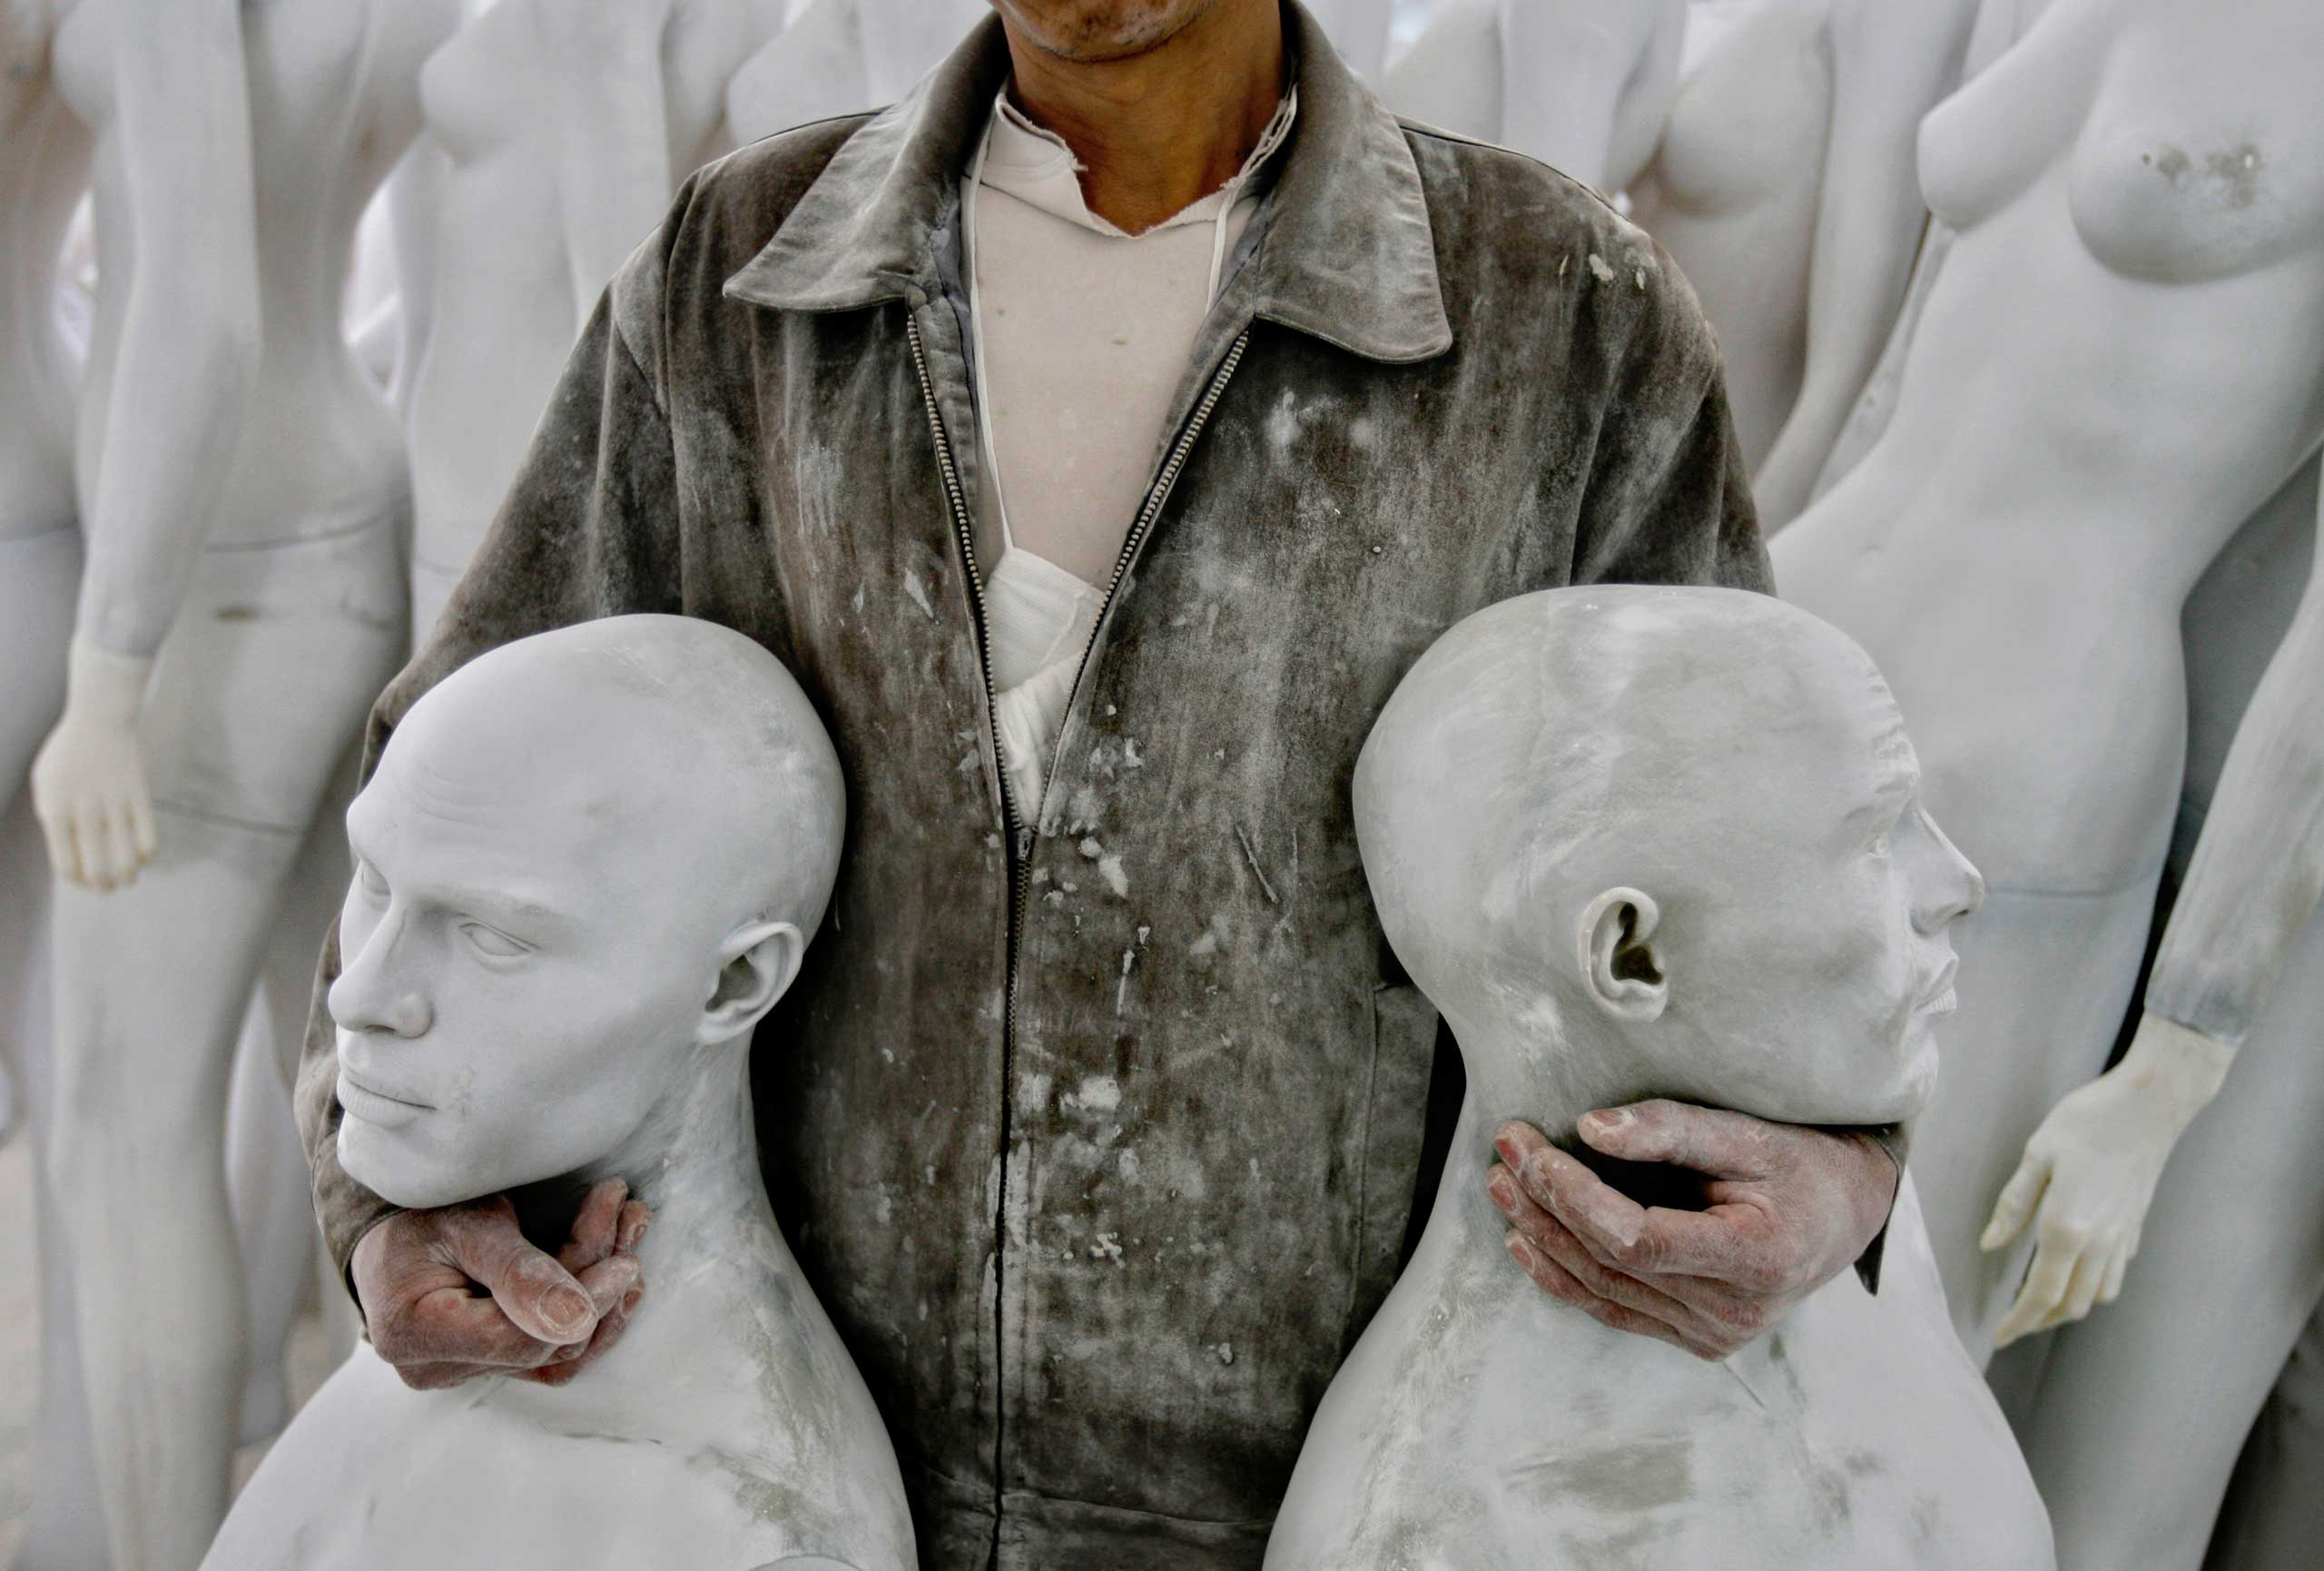 A Lucky Human mannequin factory employee holds mannequins, in the booming southern Chinese city of Shenzhen.